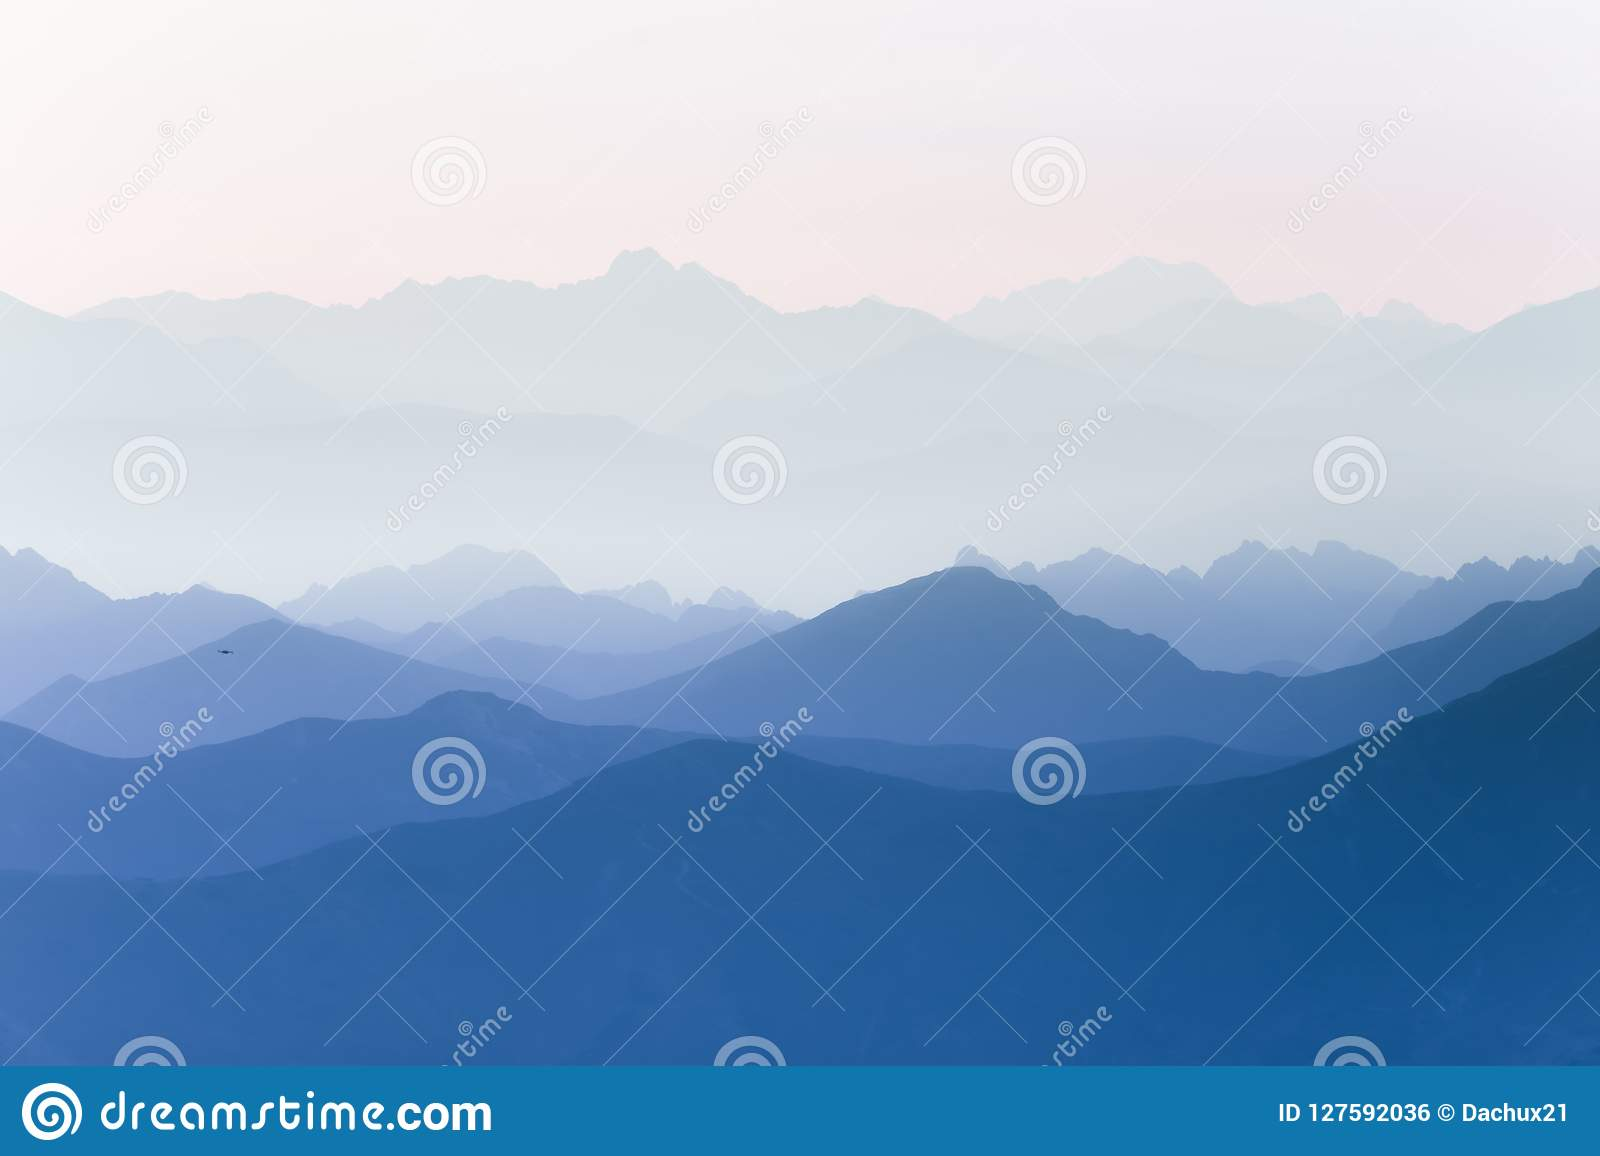 Colorful, abstract double exposure of mountains in sunrise. Minimalist scenery with color gradients.